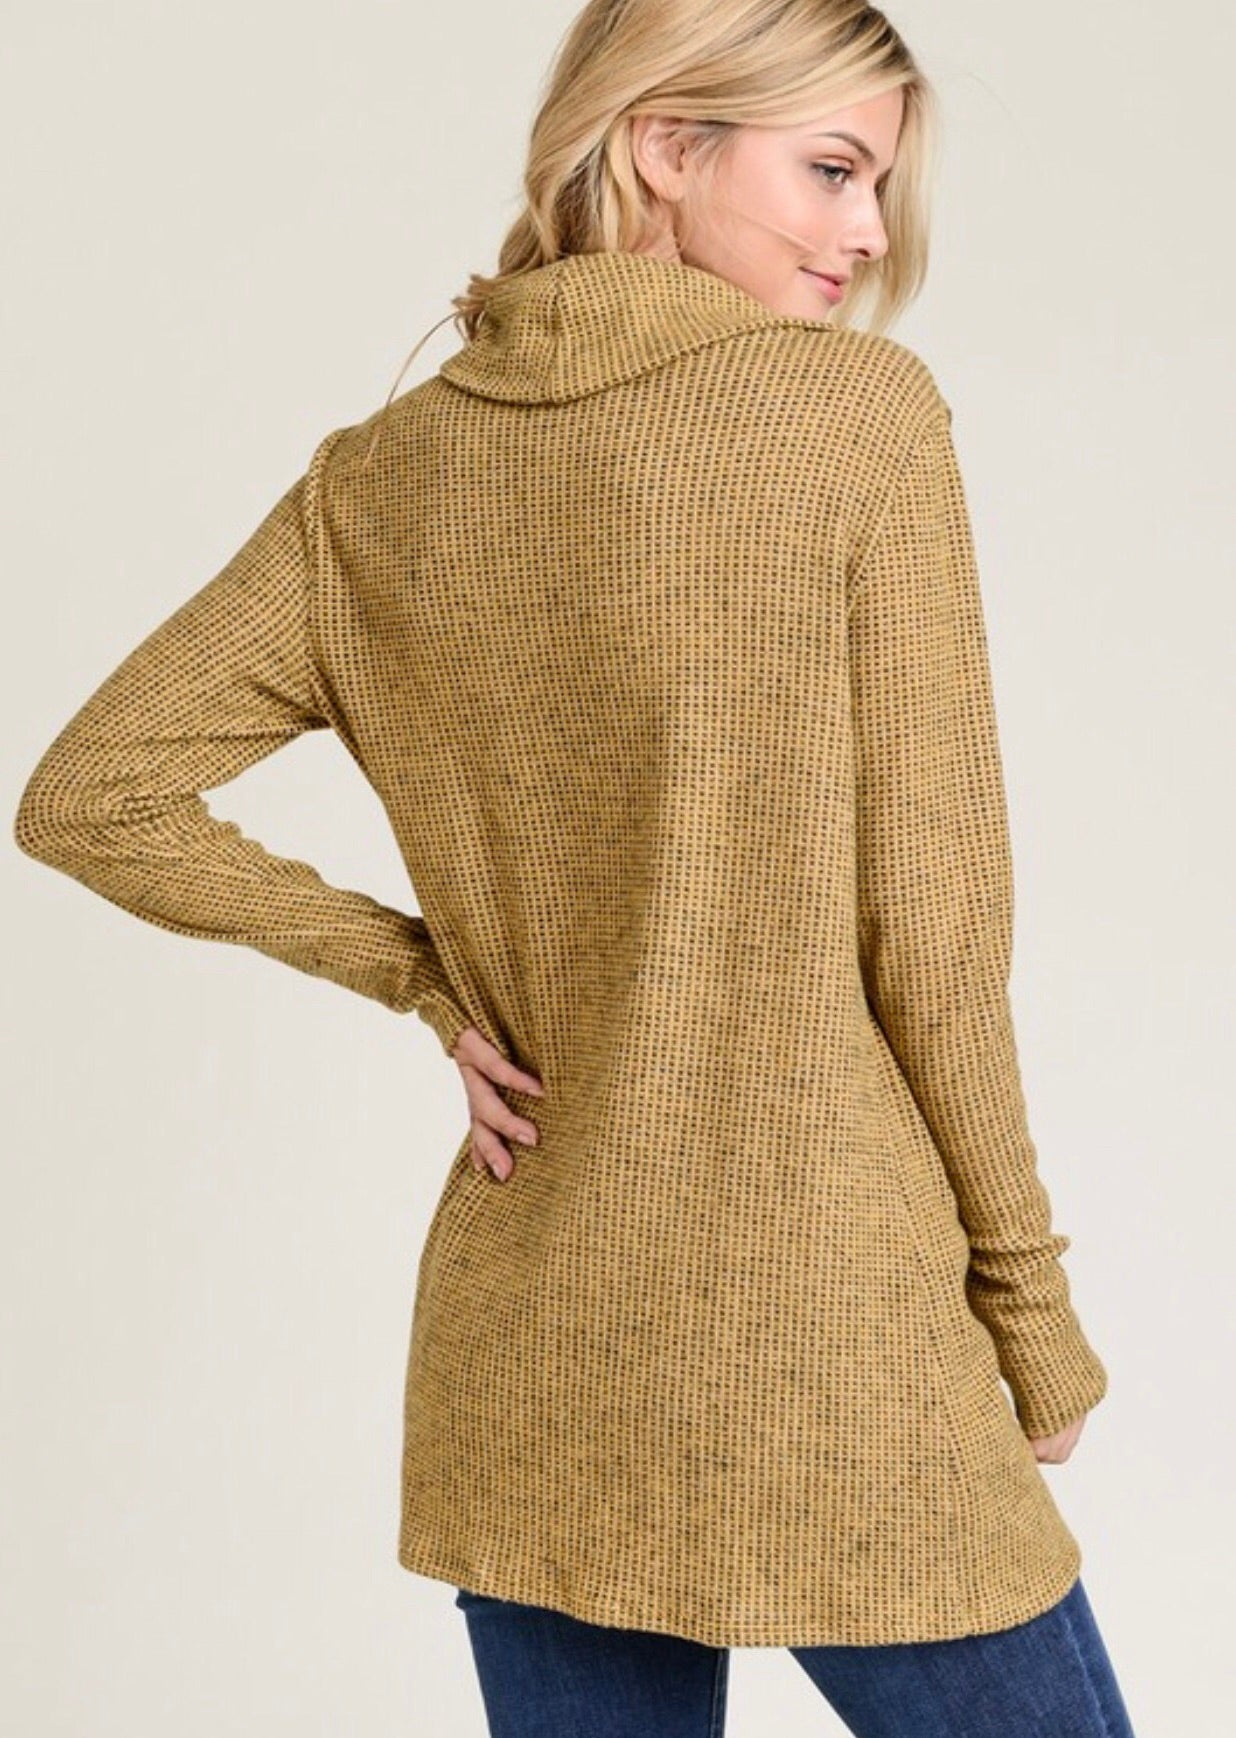 Mustard 2-Toned Brushed Knit Sweater